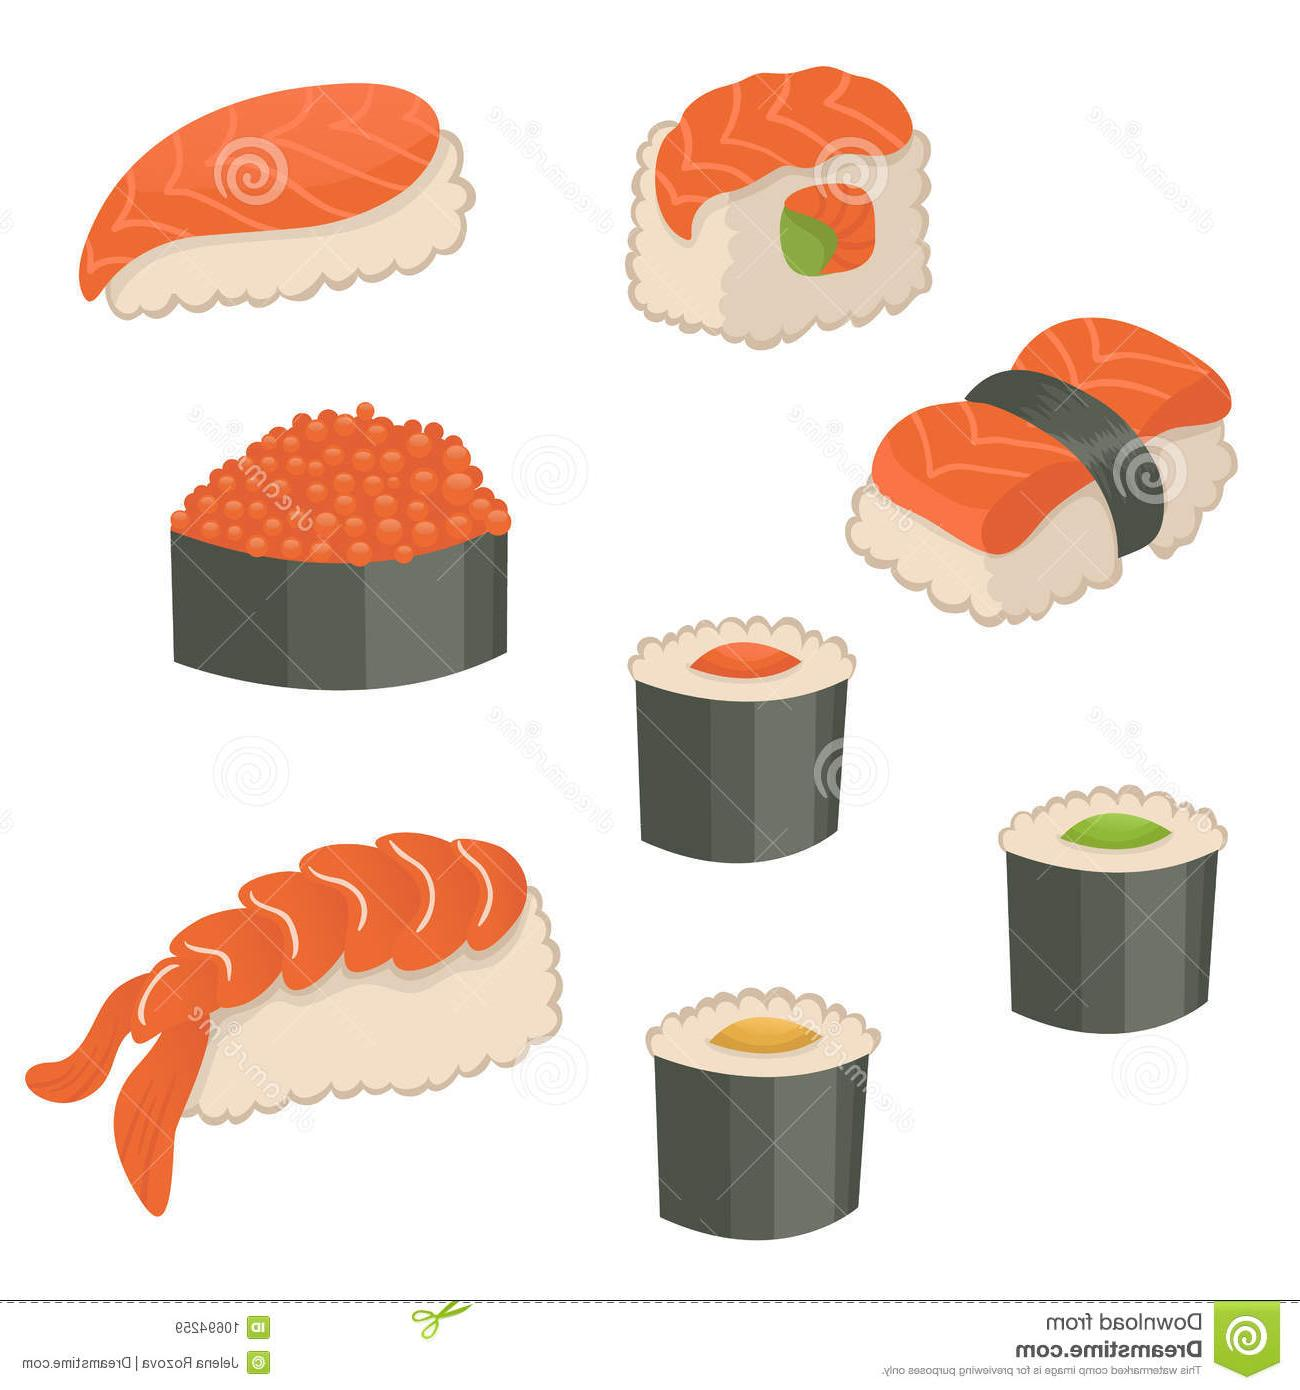 Sushi icon clipart graphic freeuse library Unique Cute Sushi Icon Drawing » Free Vector Art, Images ... graphic freeuse library